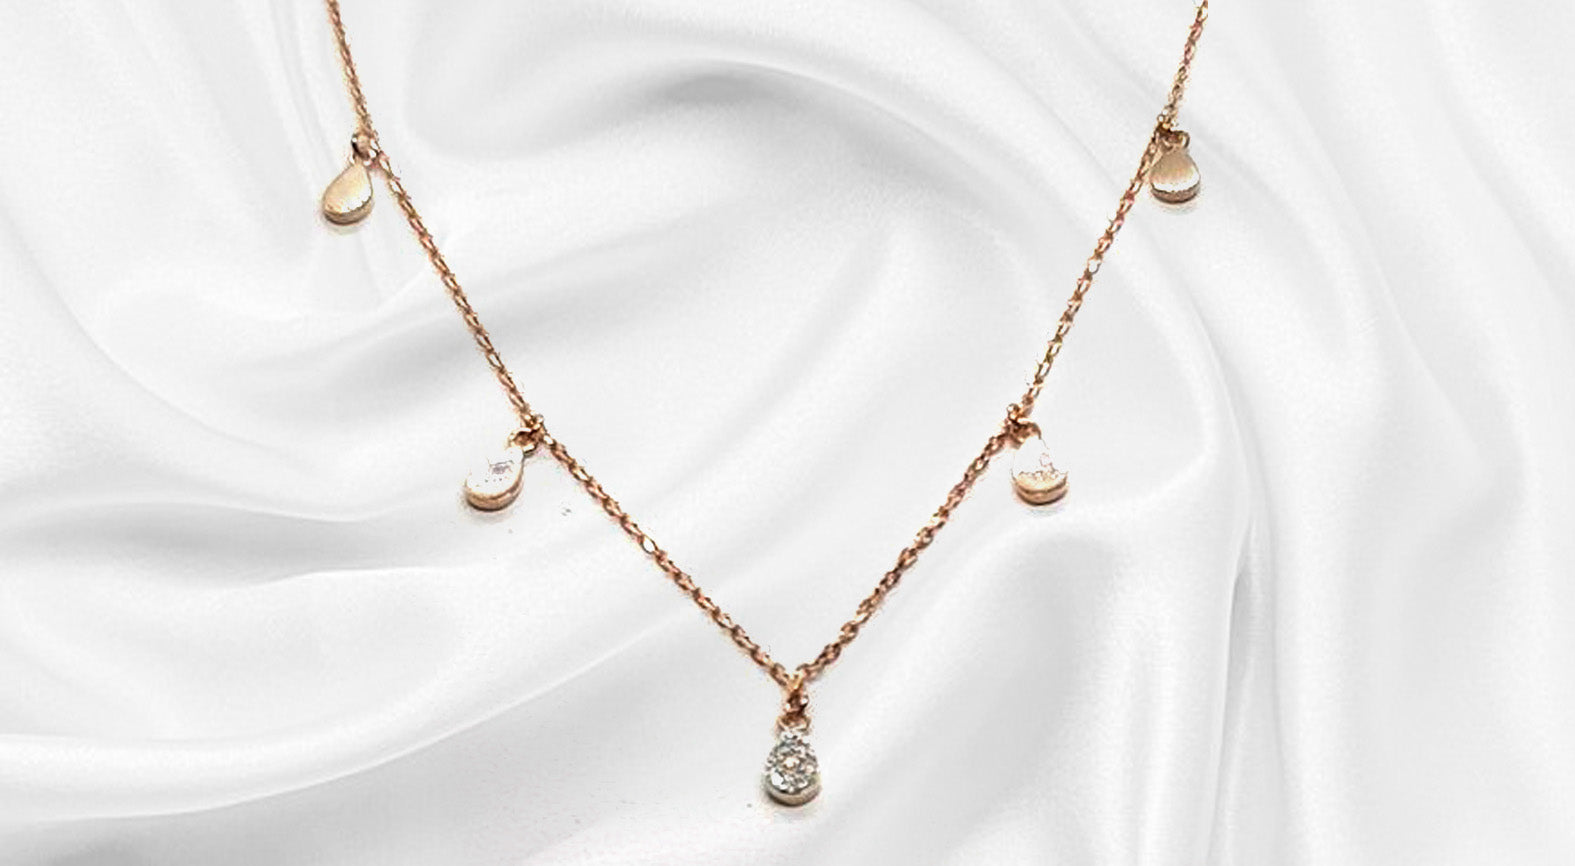 S925 Sterling Silver Cinderella Awesome Necklace (18K Gold Plated)